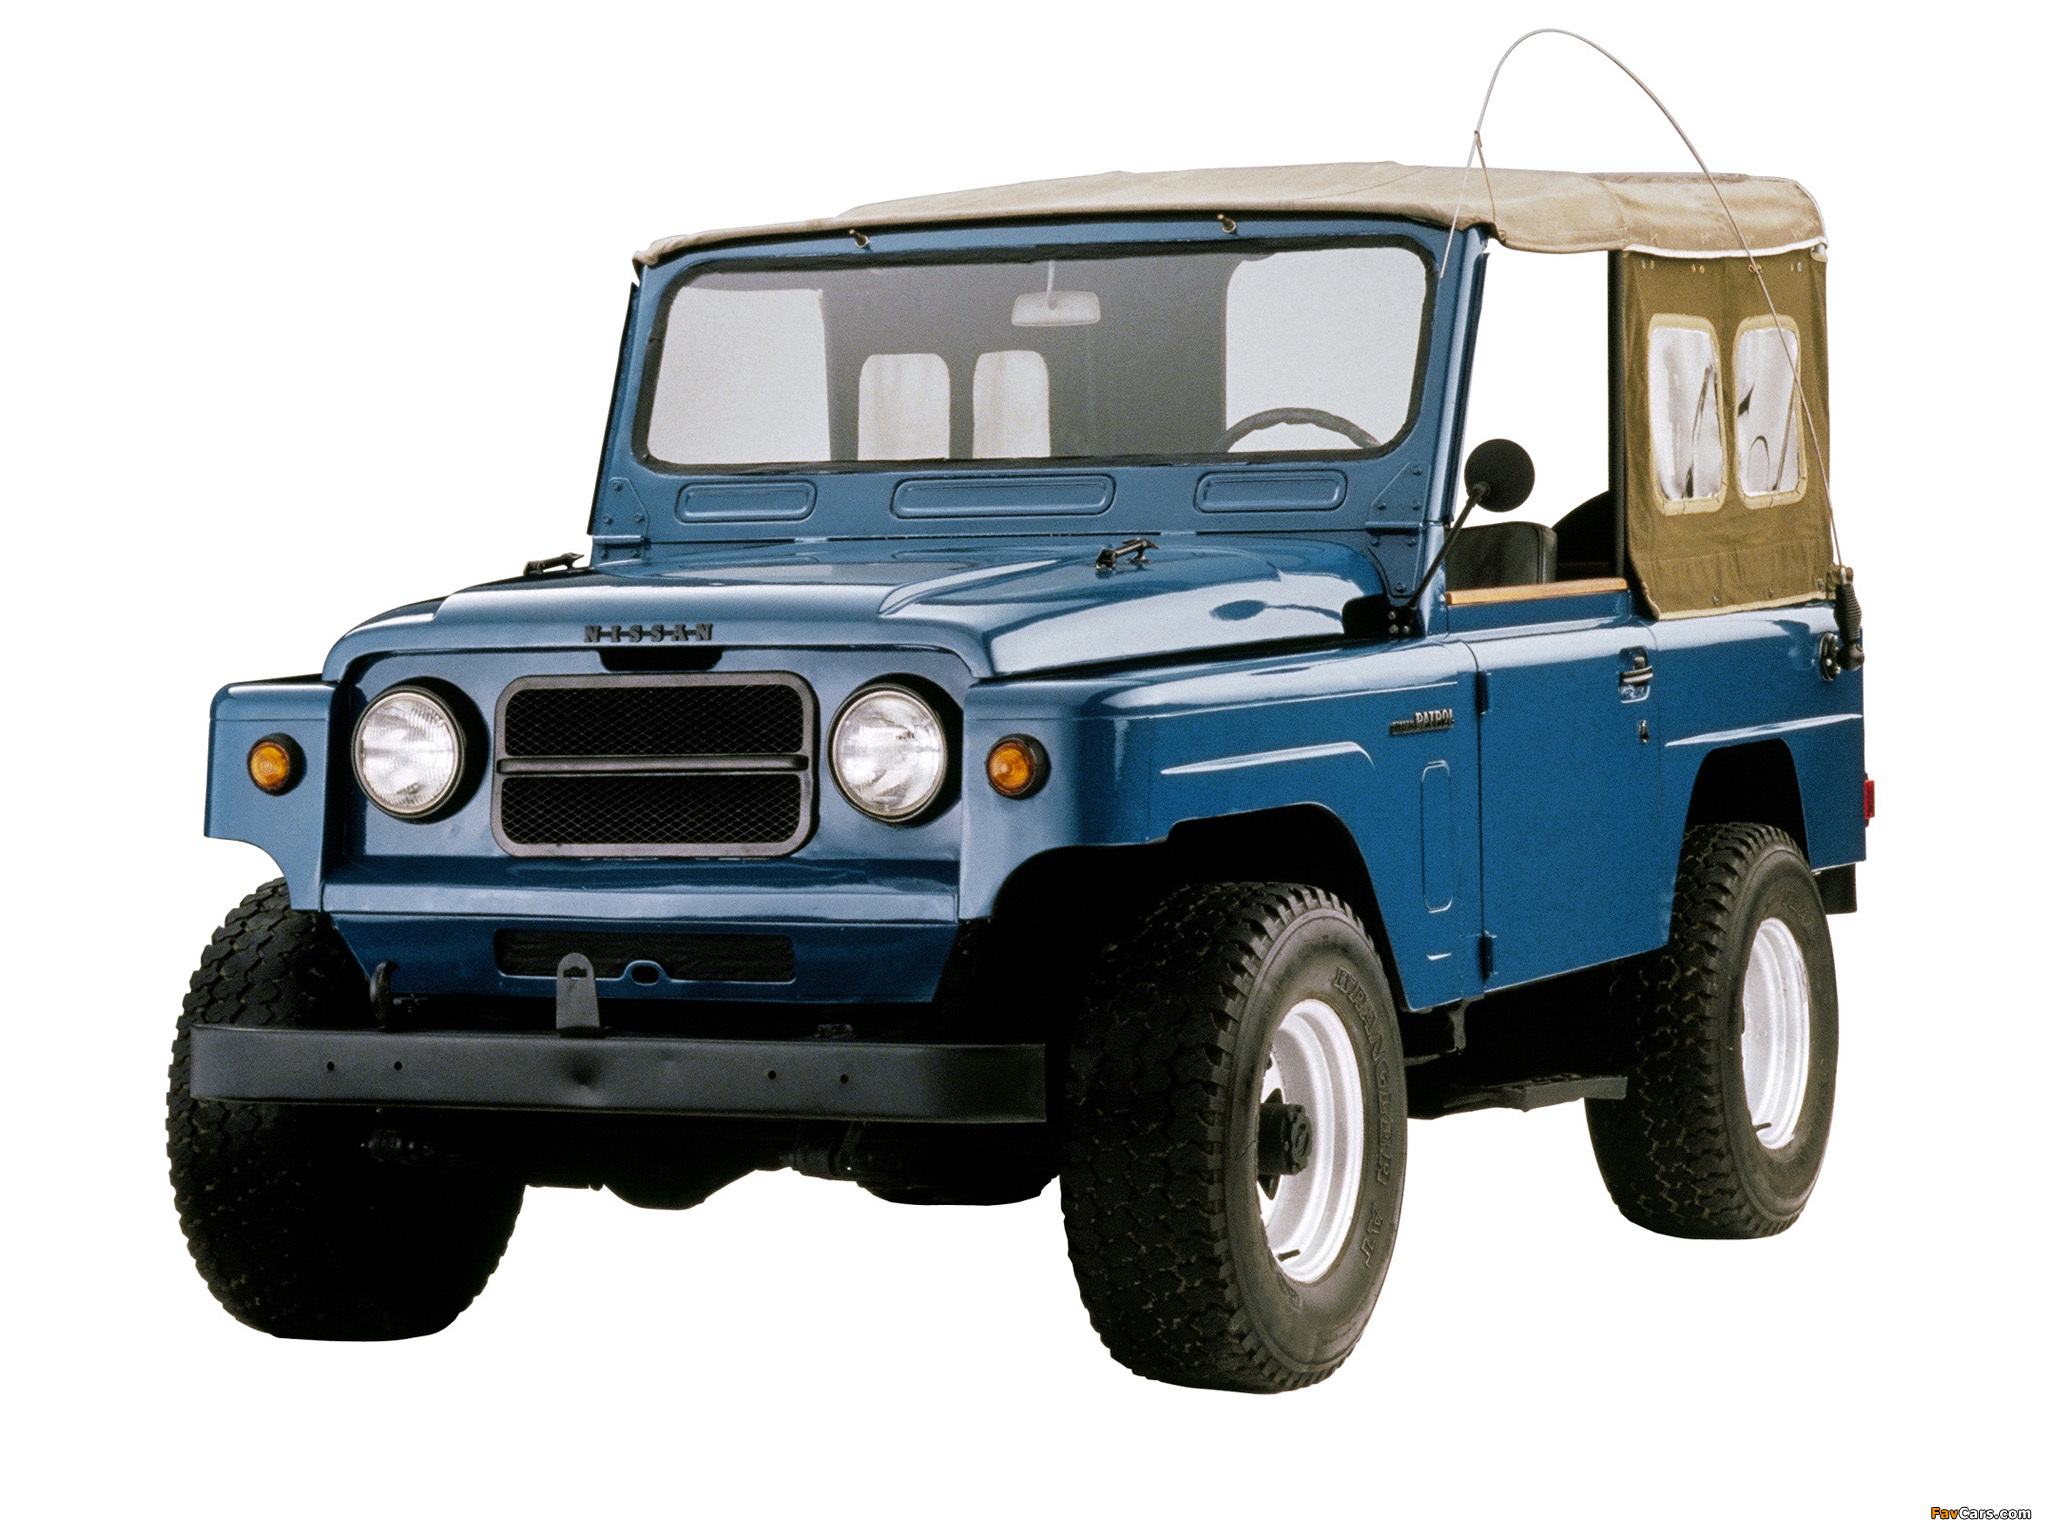 Watch likewise Watch furthermore Pictures Toyota Publica Up10 1961 66 3893 furthermore American Lafrance 900 Series Turbo Chief 1960 1961 Wallpapers 27118 together with 1970 Ford Bronco. on car ads from 1960